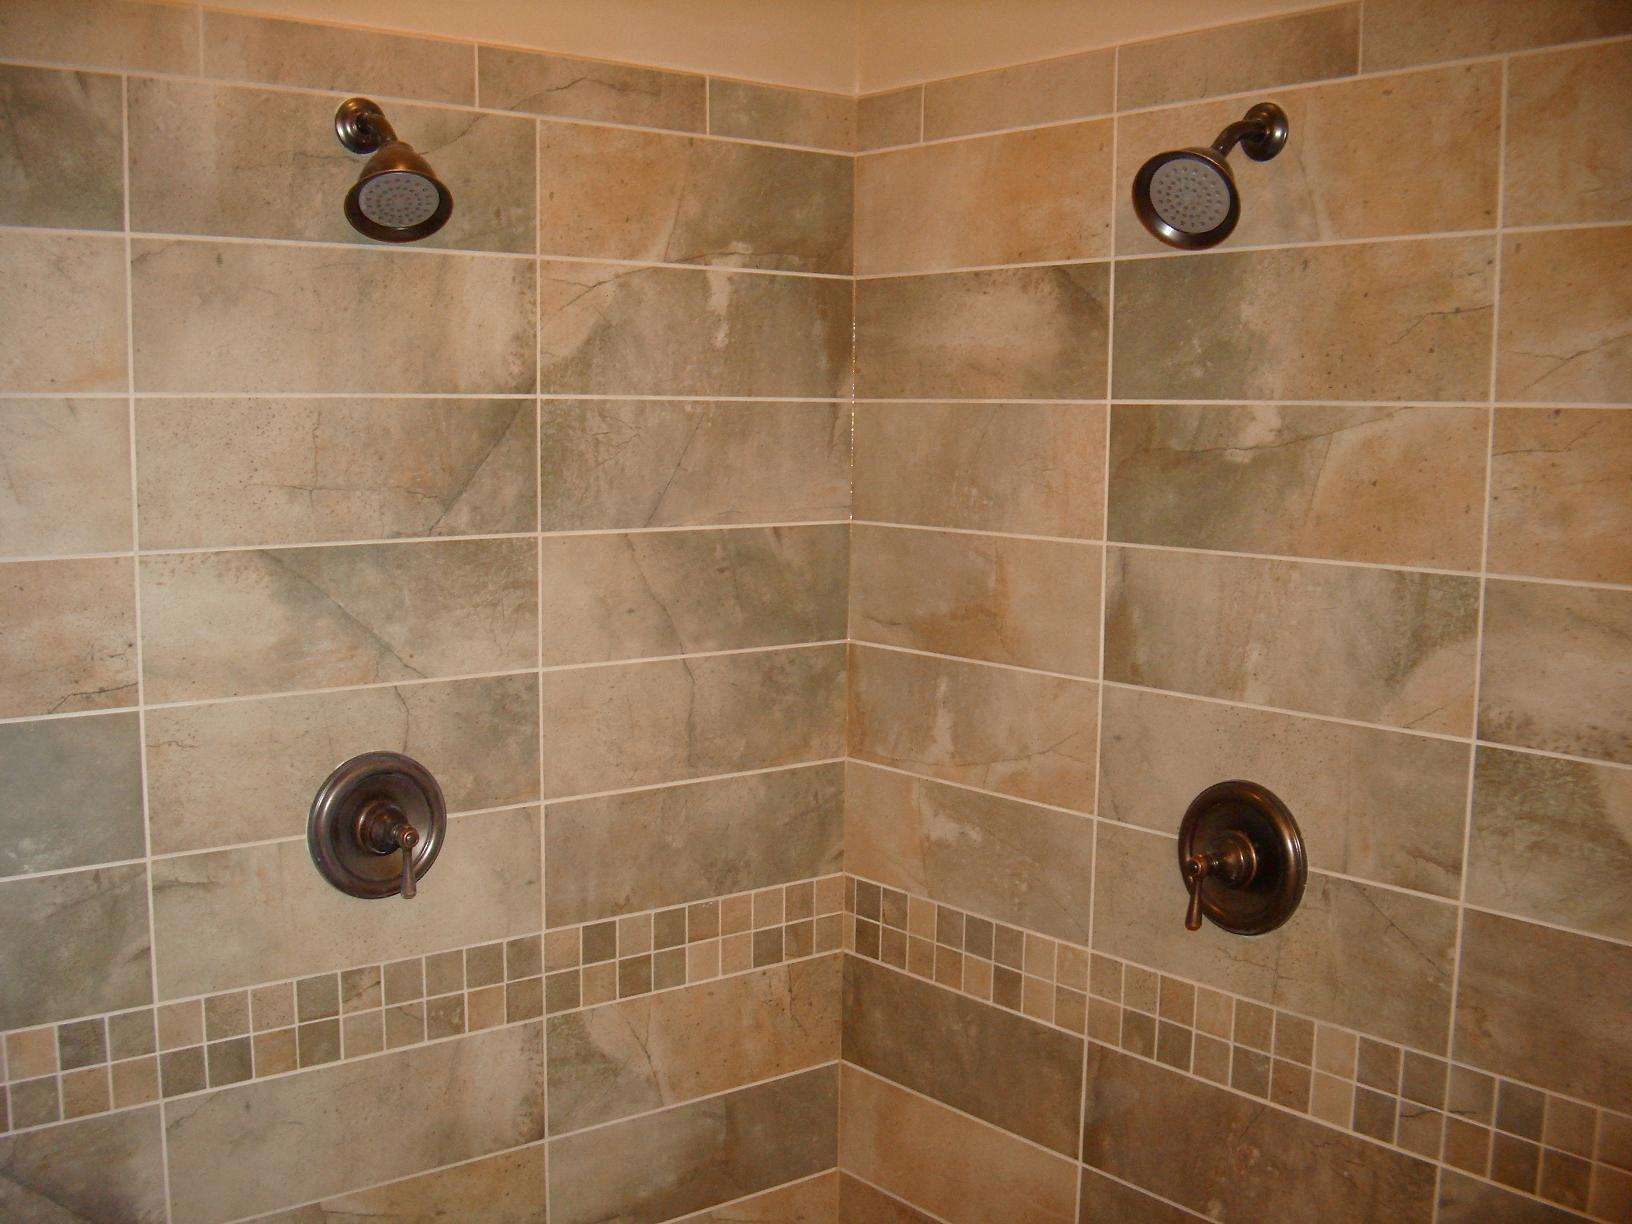 Laying Tile Bathroom Ceramic Floors Luxury